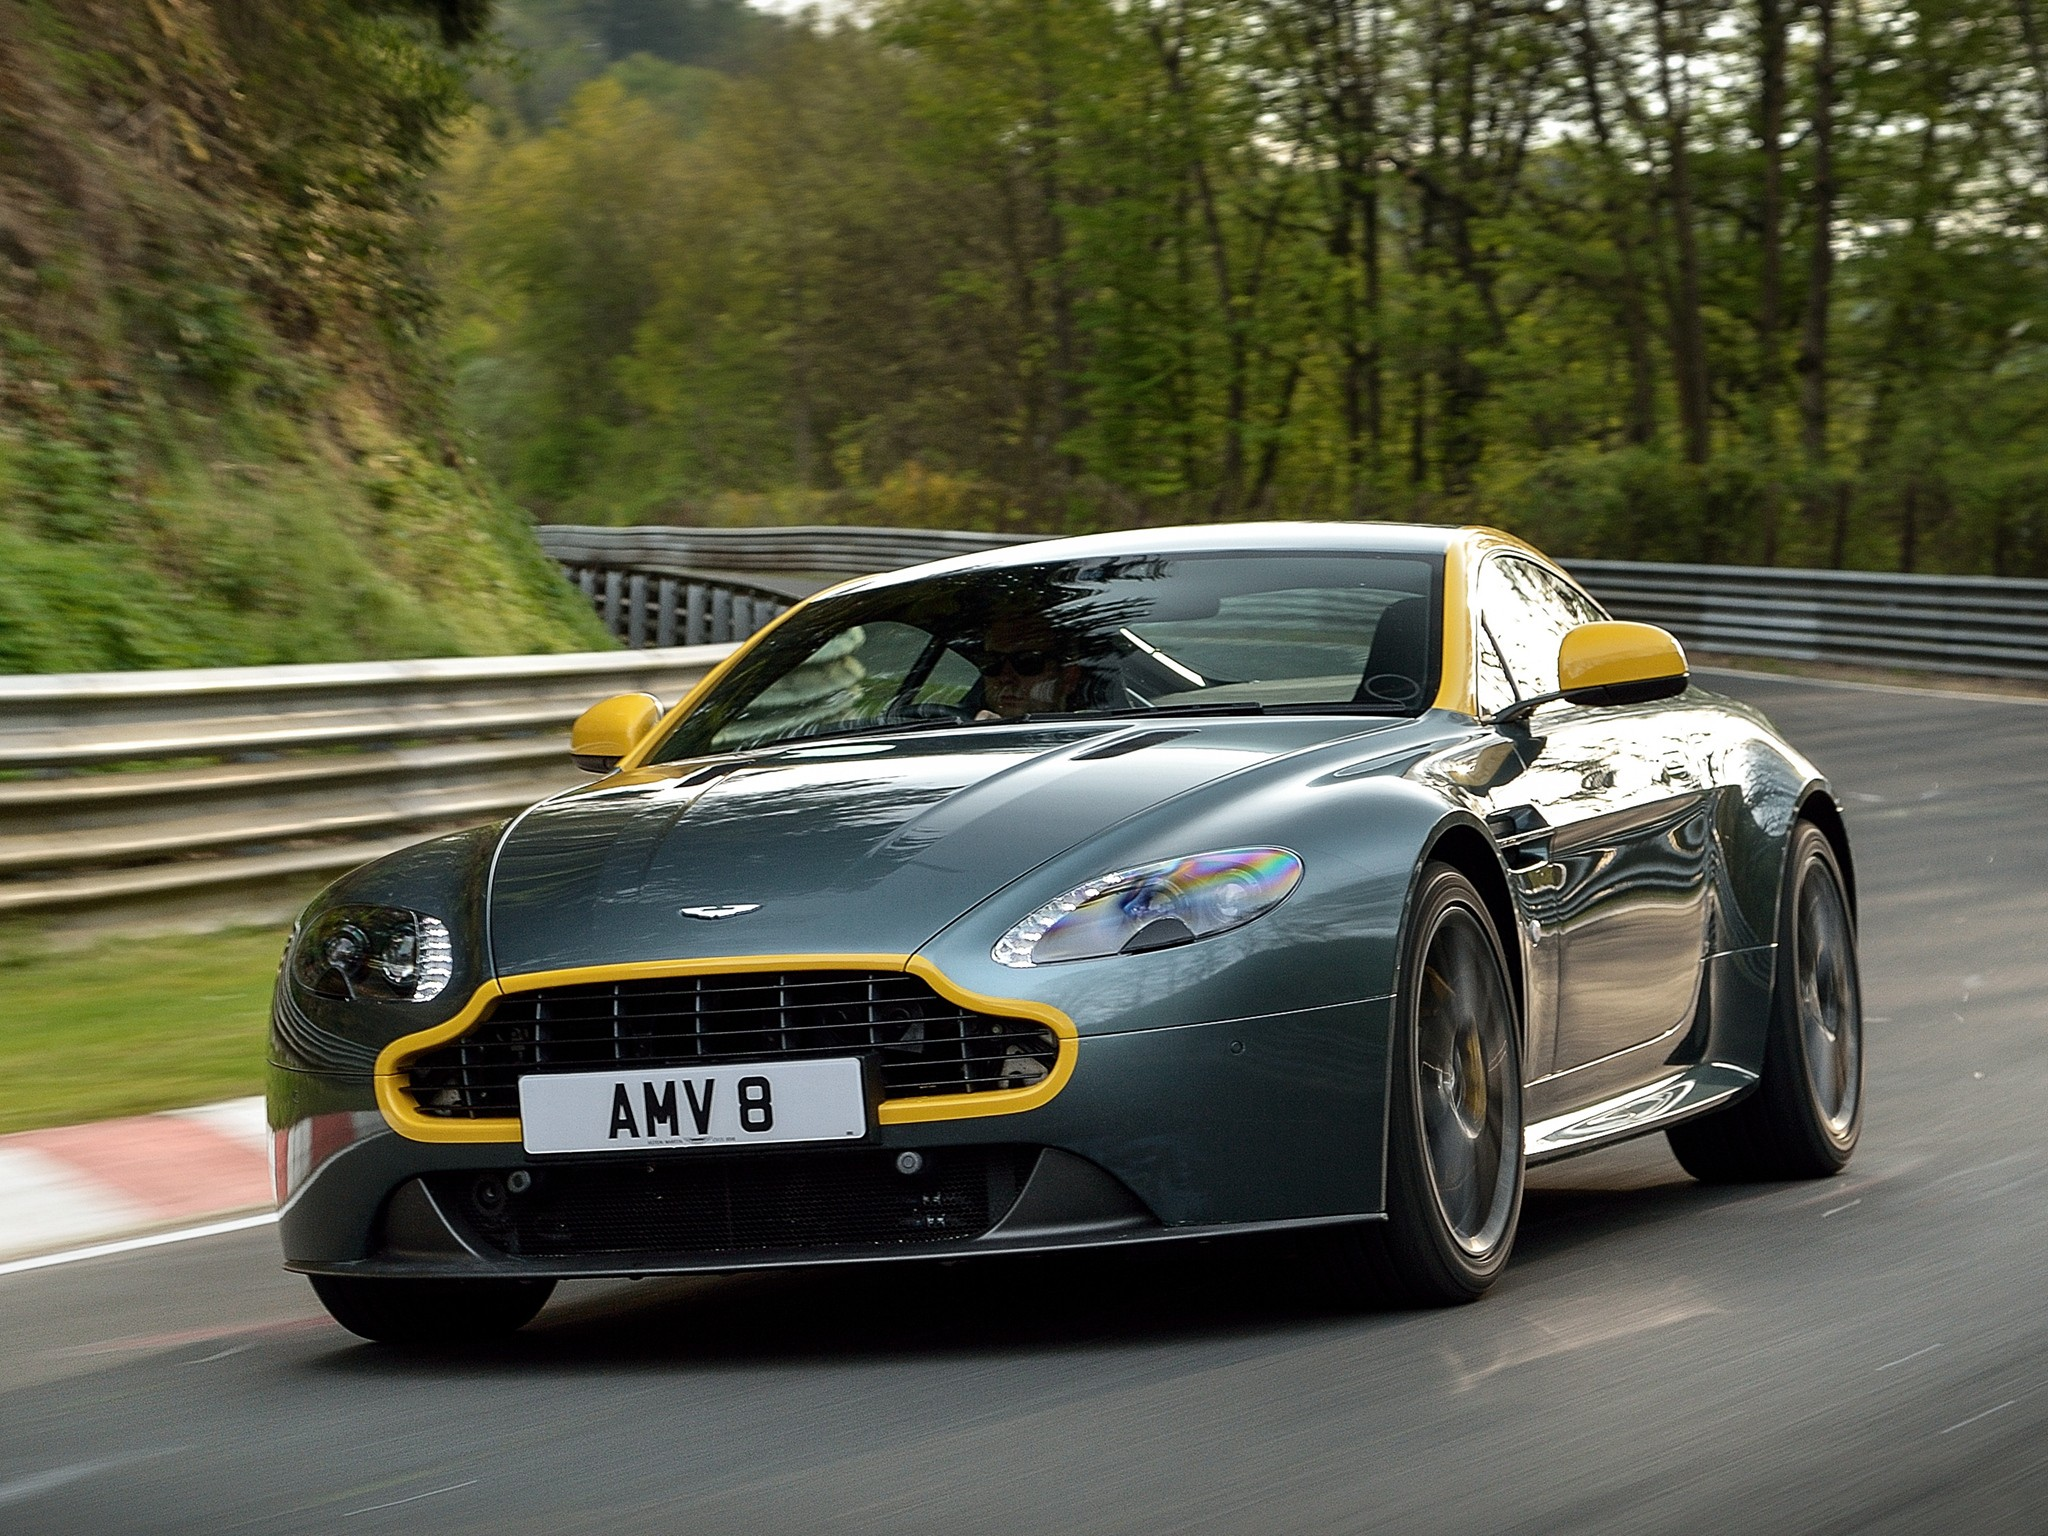 aston martin v8 vantage n420 specs 2010 2011 2012 2013 2014 autoevolution. Black Bedroom Furniture Sets. Home Design Ideas